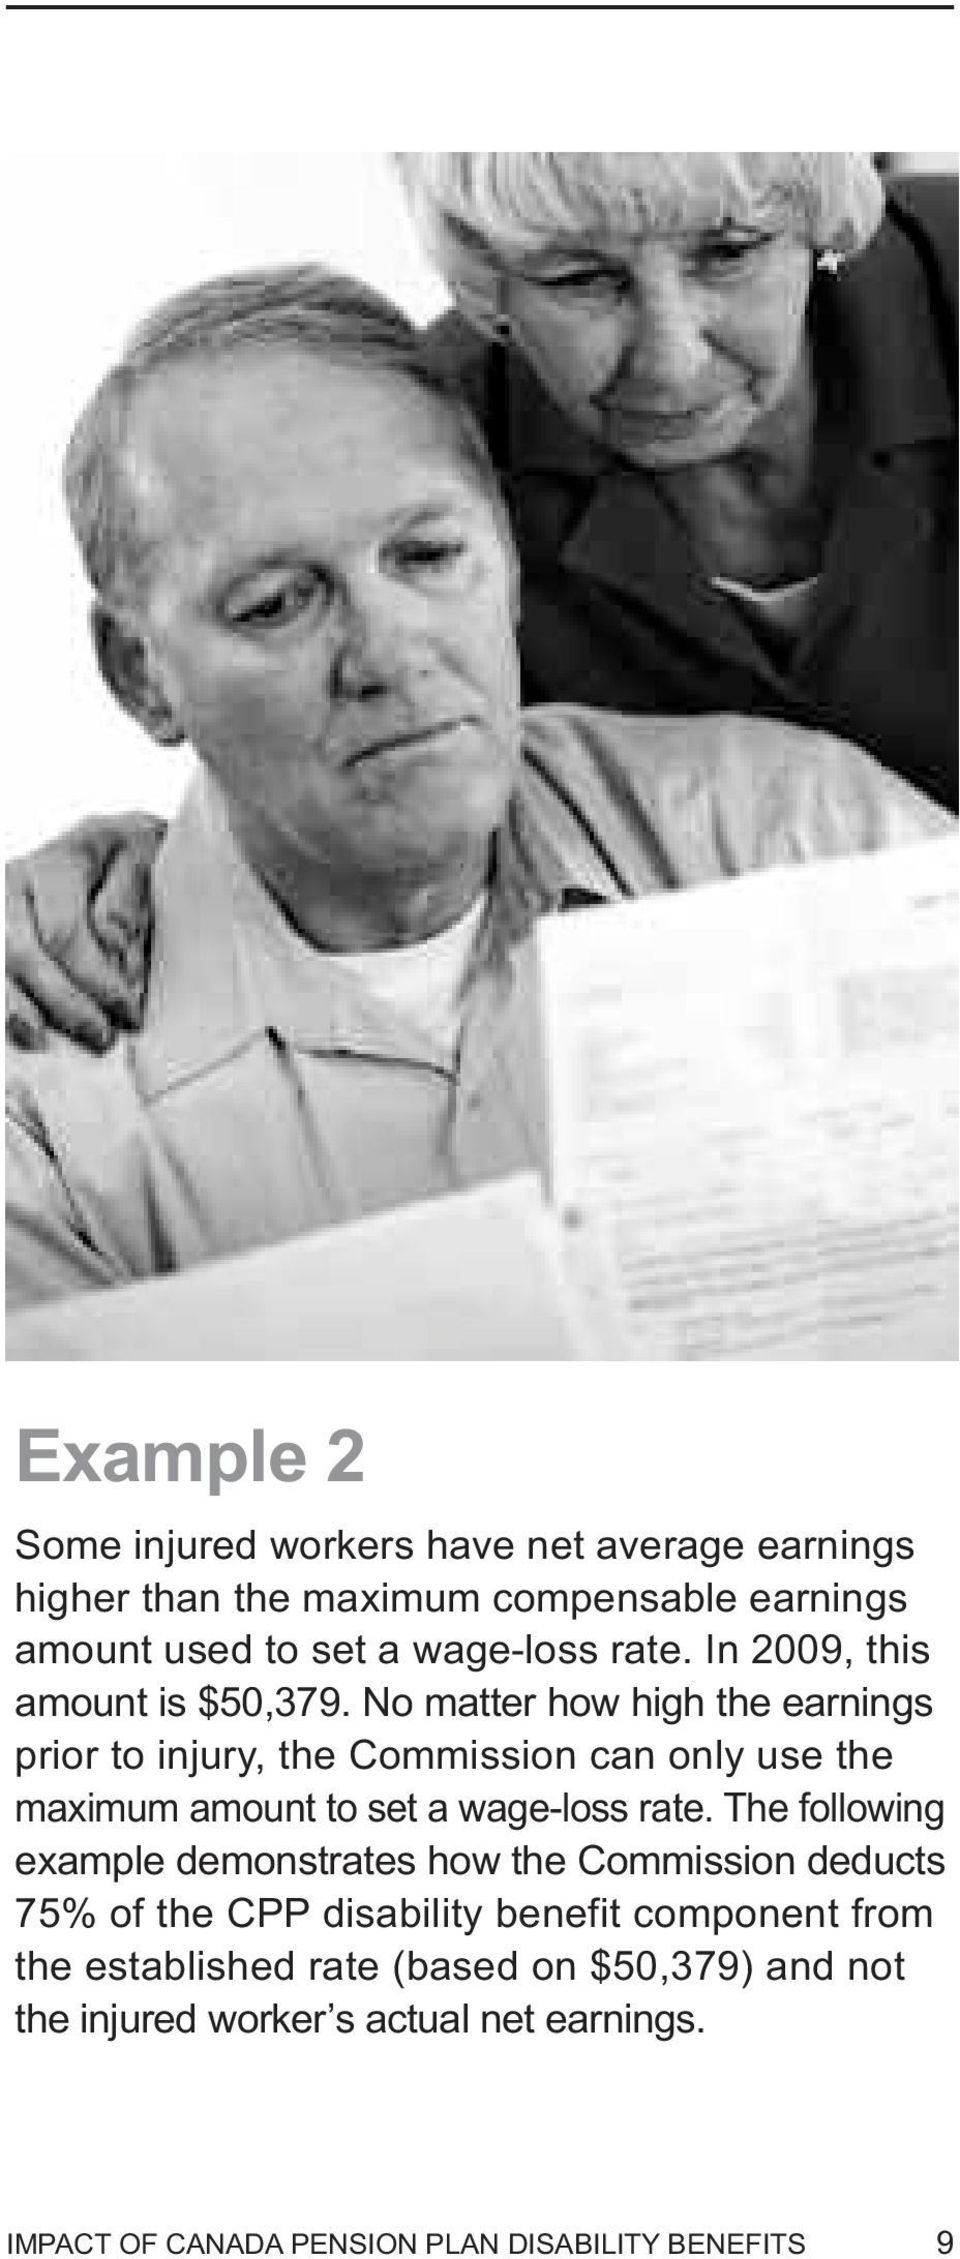 No matter how high the earnings prior to injury, the Commission can only use the maximum amount to set a wage-loss rate.